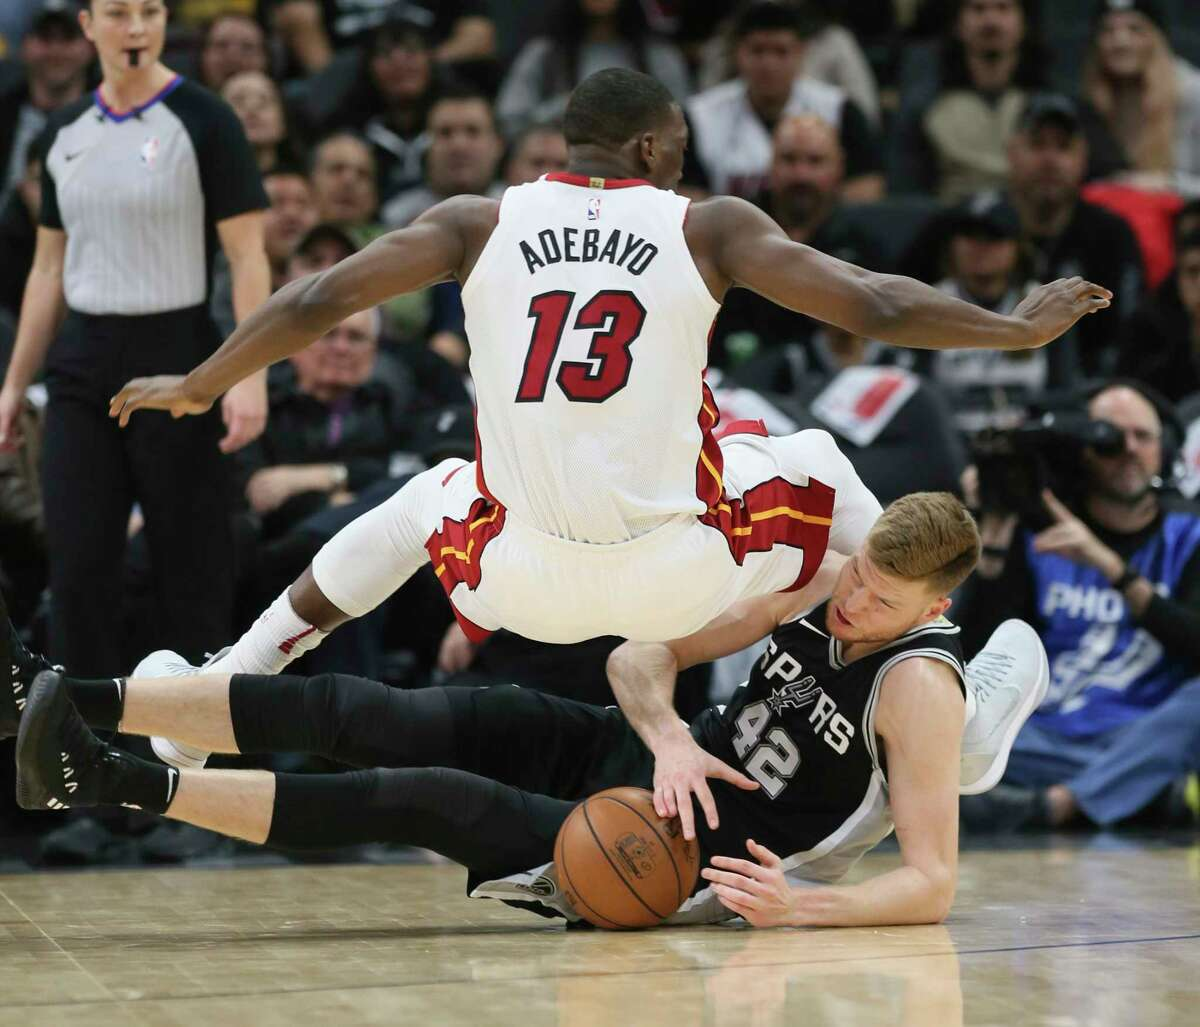 Spurs' Davis Bertans (42) dives for a loose ball against Miami Heat's Bam Adebayo (13) at the AT&T Center on Wednesday, Dec. 6, 2017.